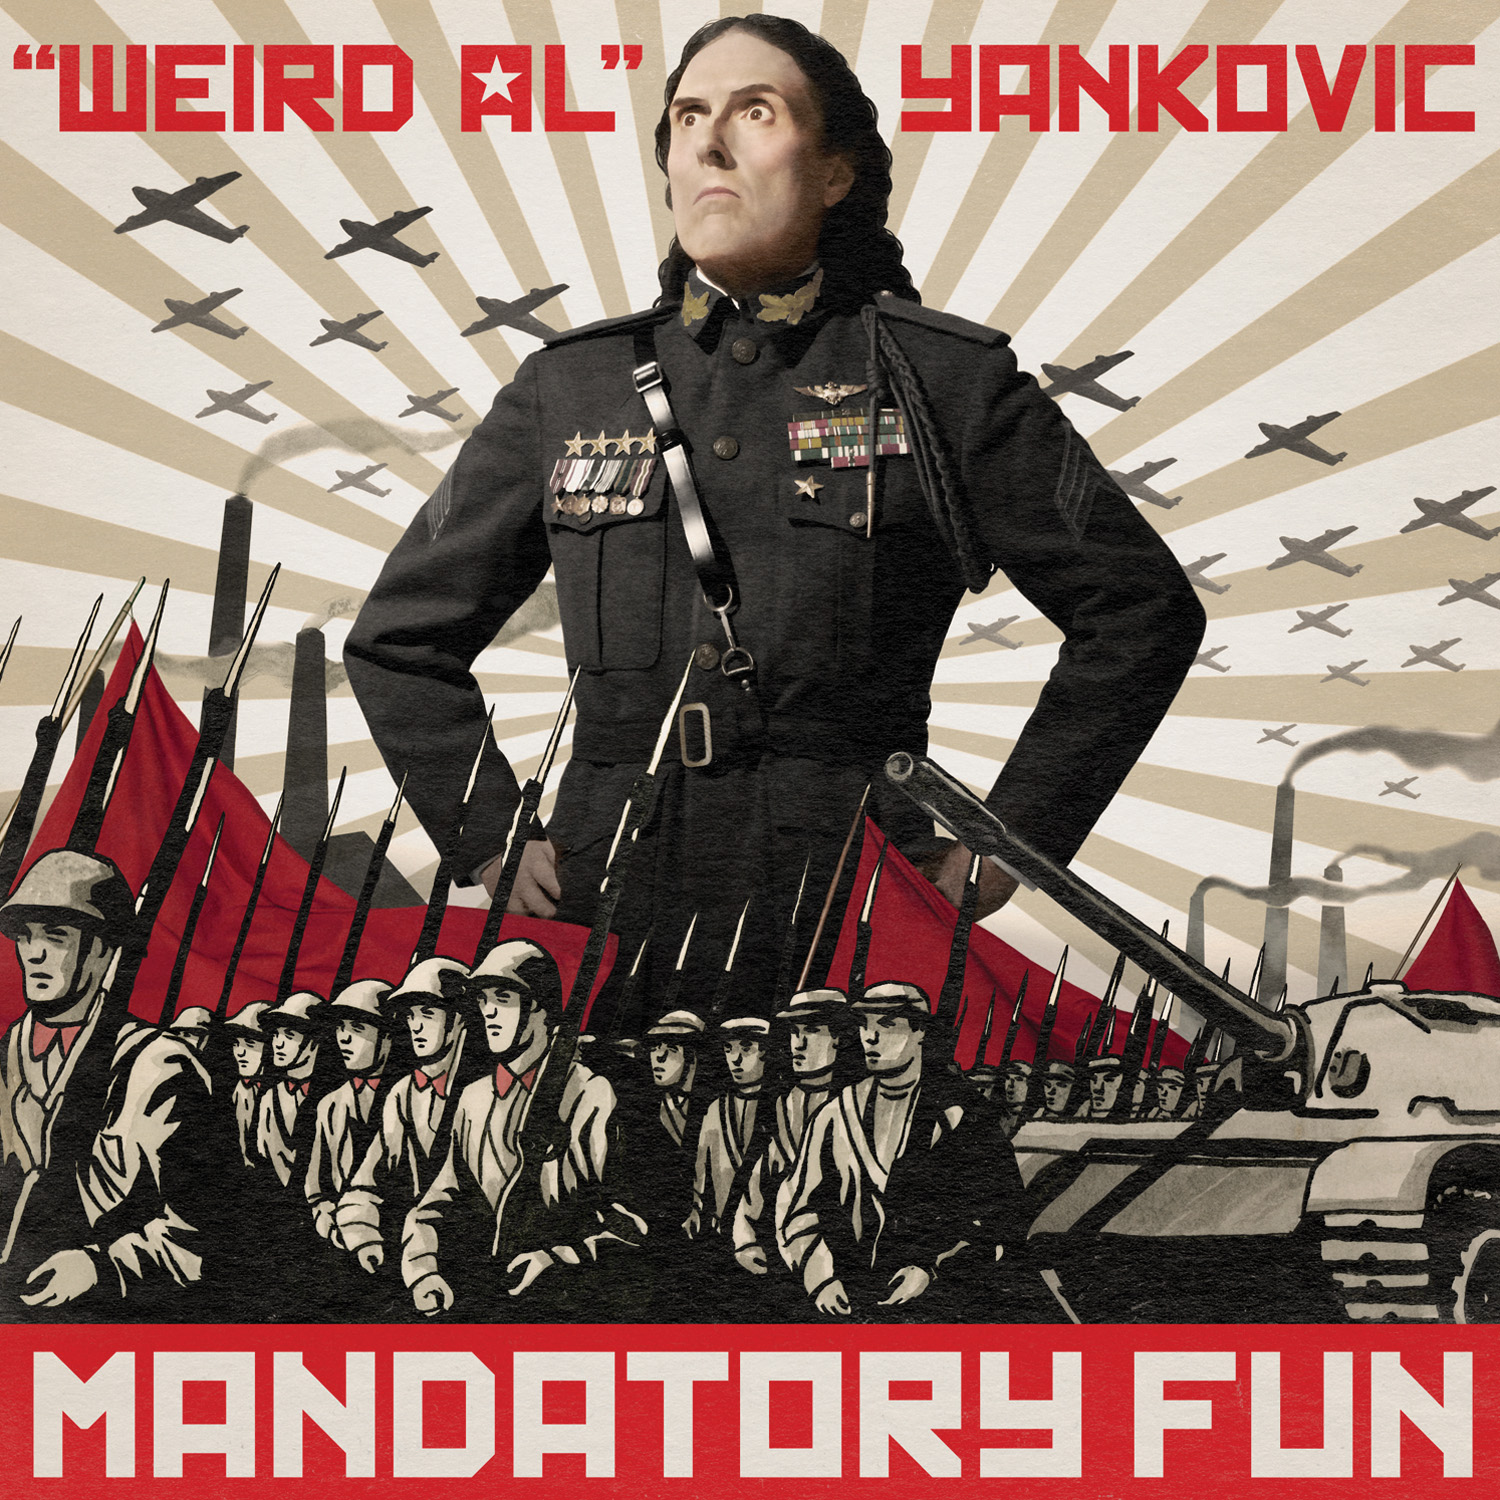 Here's Weird Al's New Polka Medley Covering Miley Cyrus, Daft Punk, Macklemore, & More